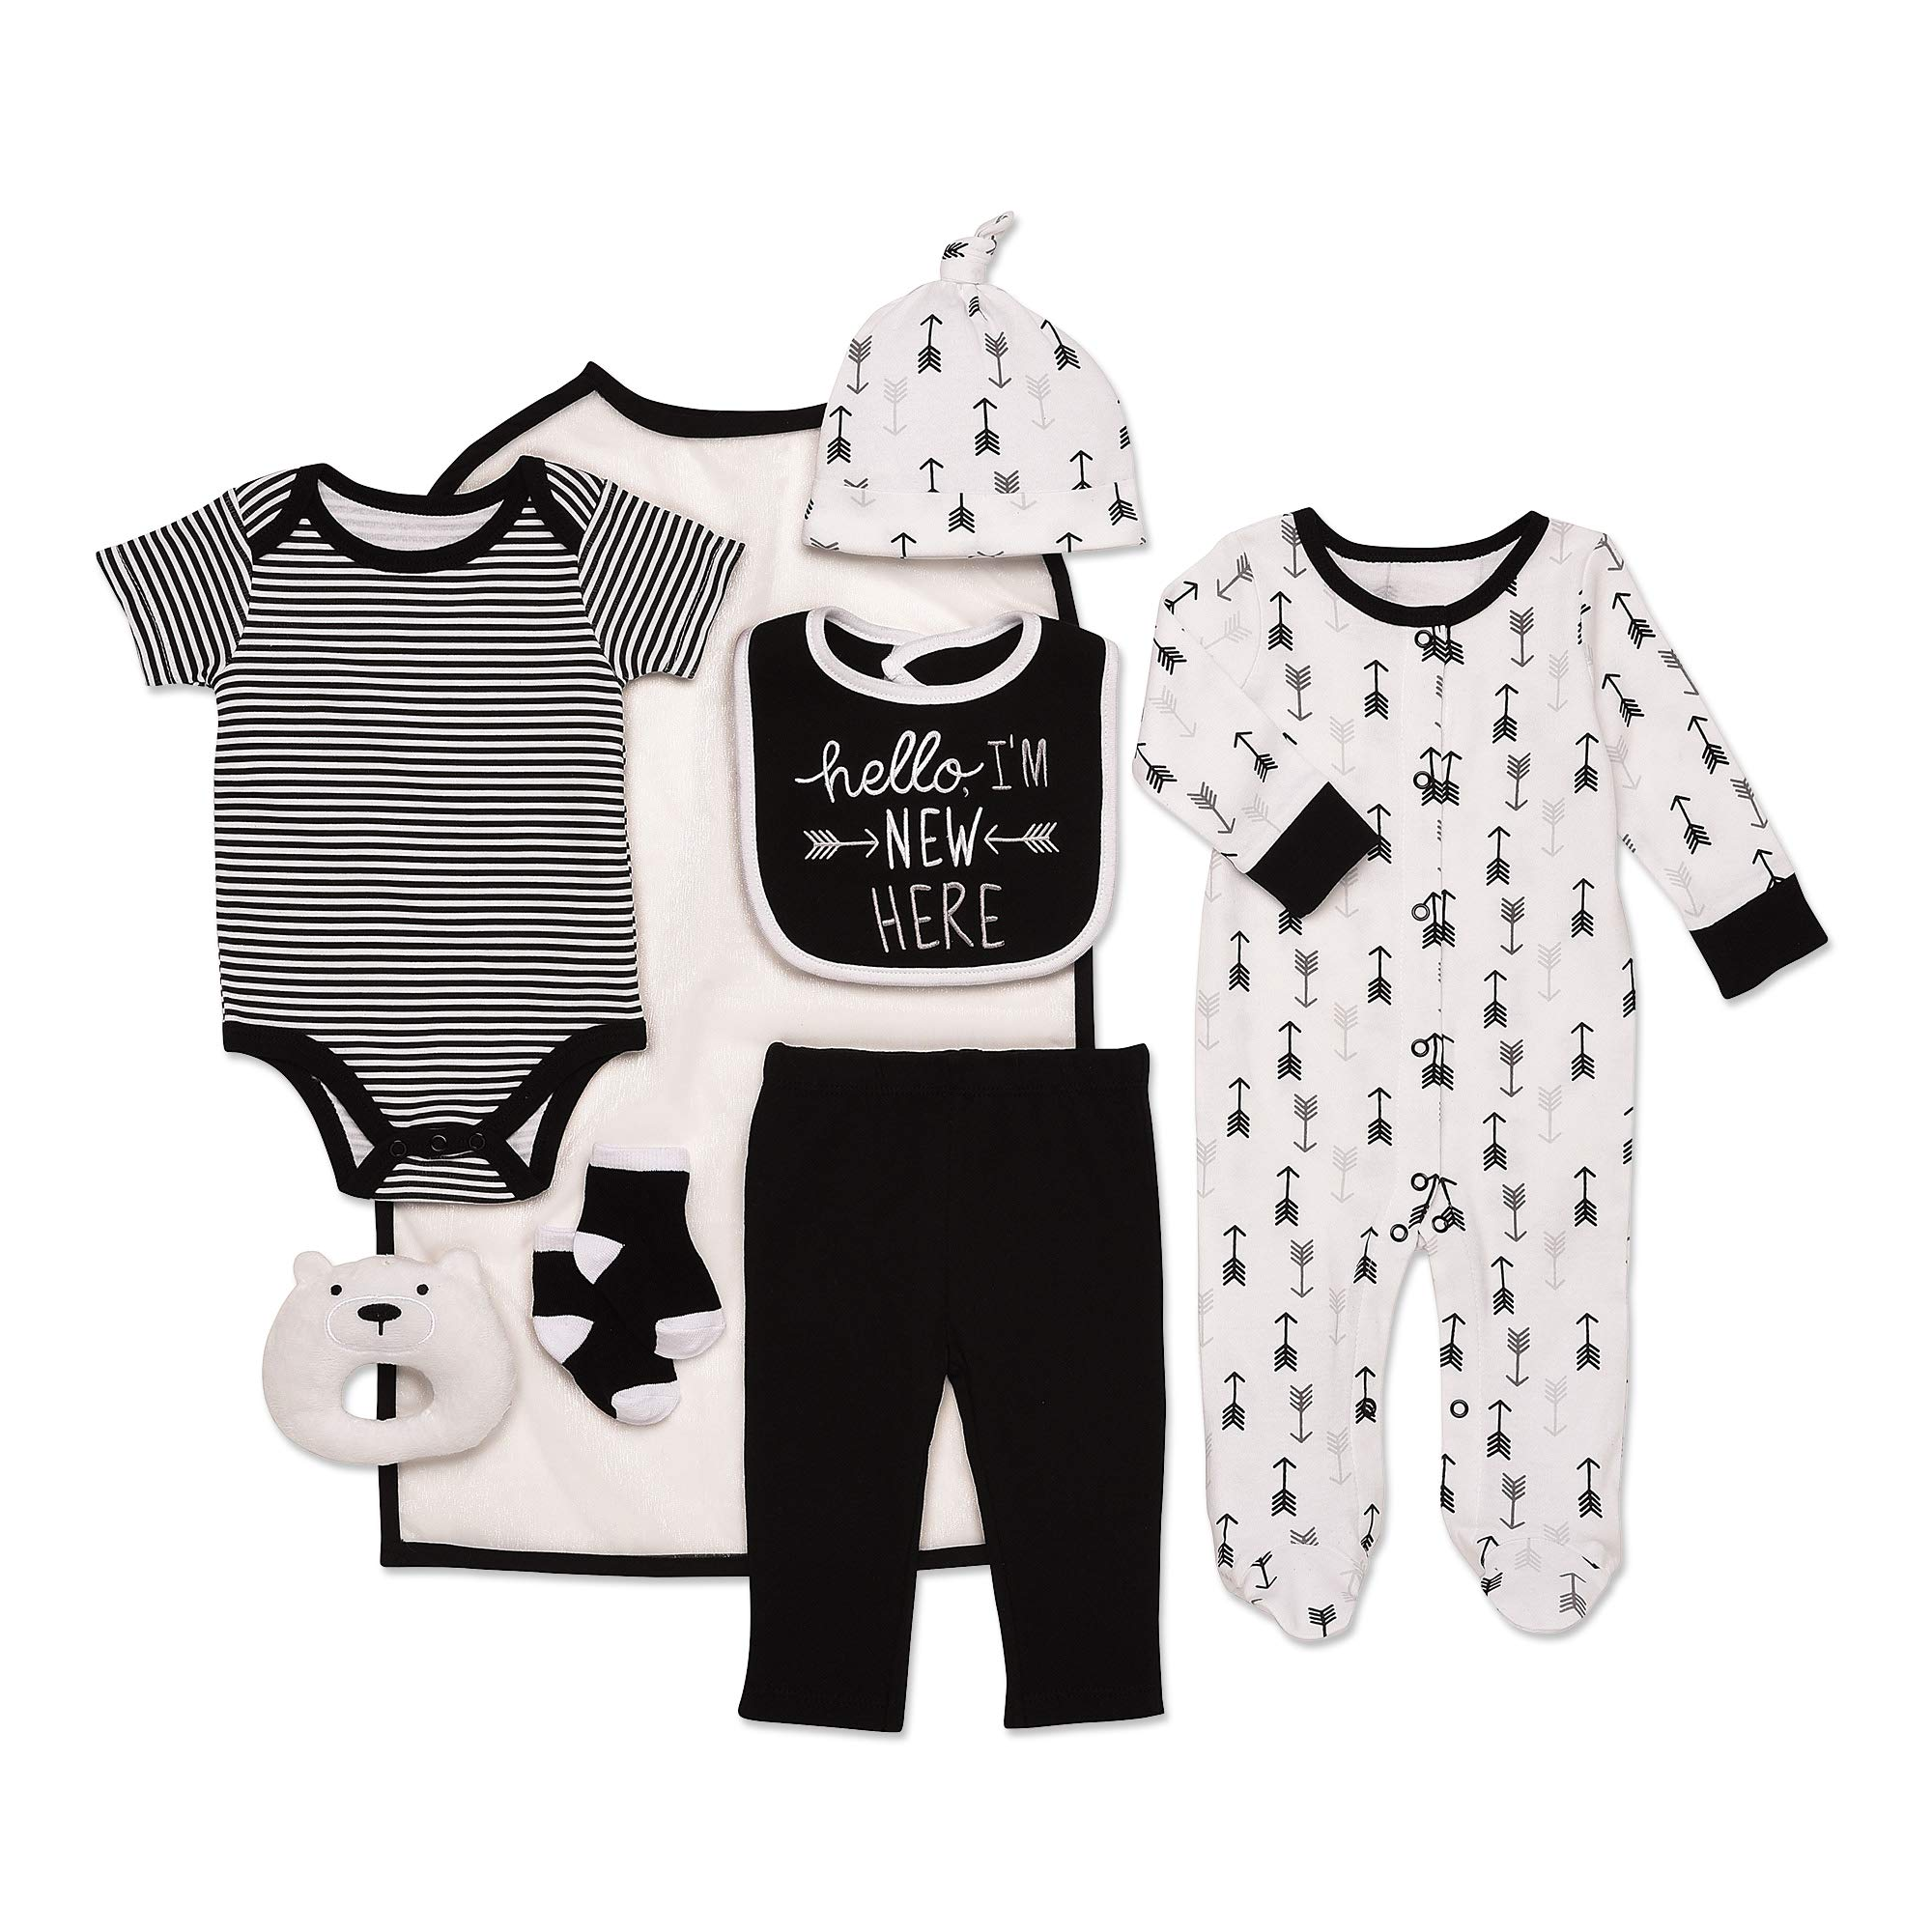 Mini B. by Baby Starters 9-Piece Hello I'm New Here Layette Set Black/White 0-3 Months for Sleep & Play with Bodysuit, Pants, More by Baby Starters